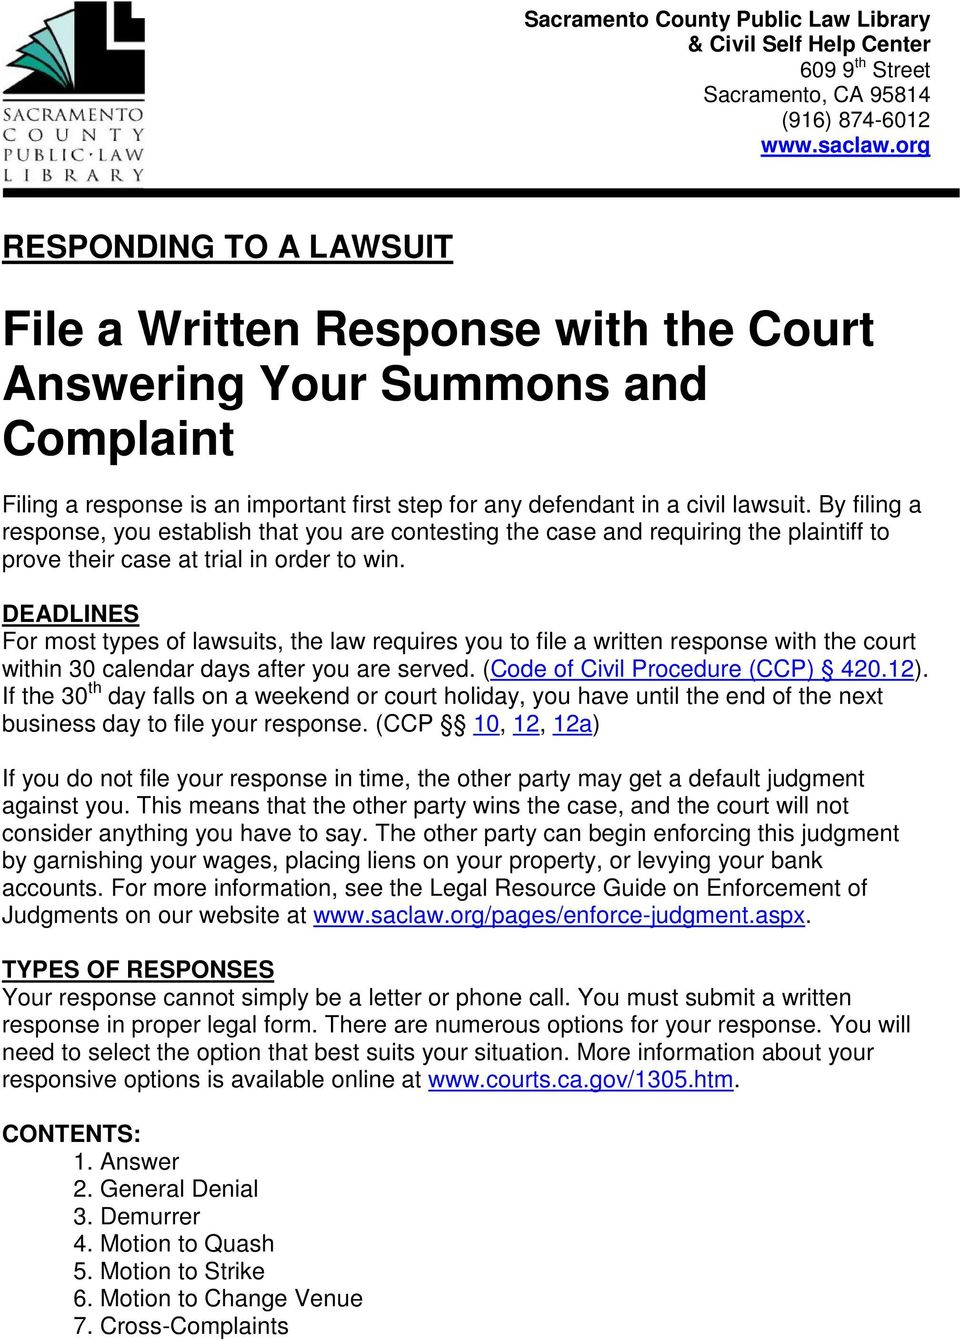 File a written response with the court answering your summons and by filing a response you establish that you are contesting the case and requiring the altavistaventures Gallery